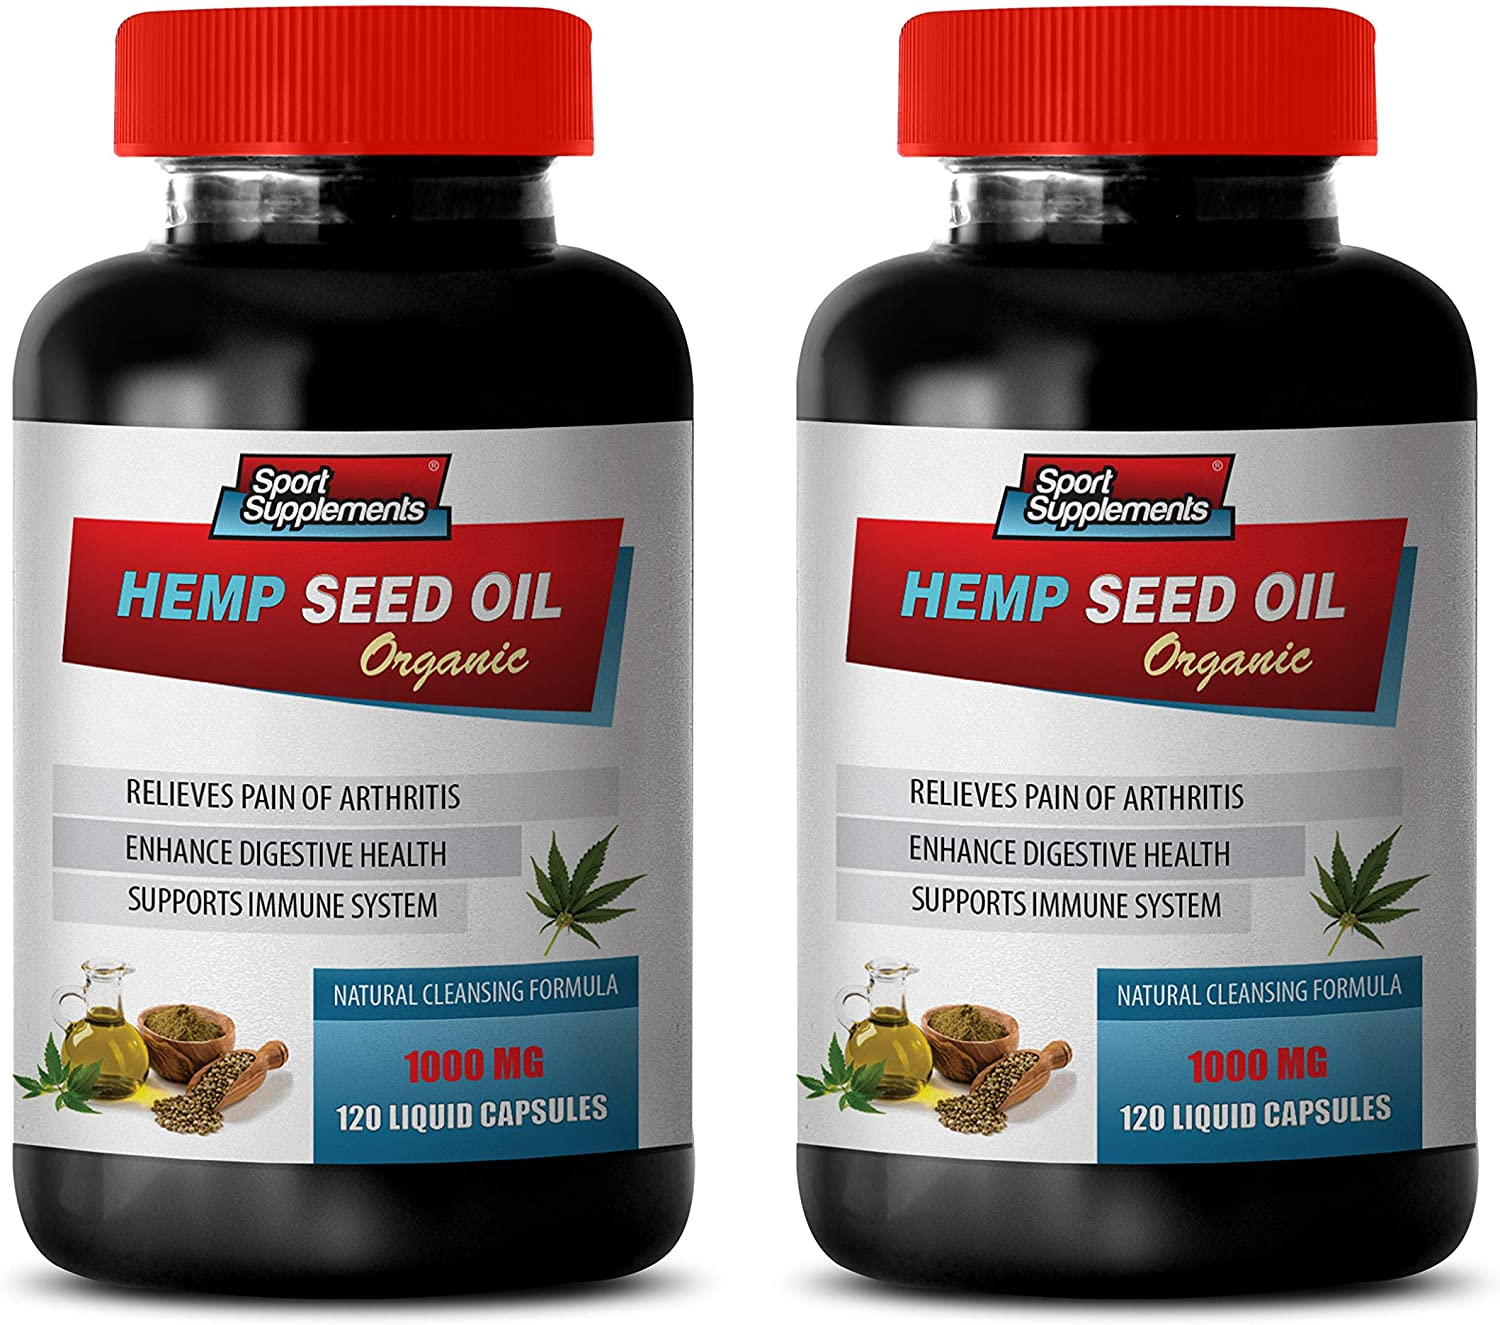 Pain Relief Formula - Hemp Seed Oil for Pain Relief 1000MG - Hemp Seed Oil Dietary Supplement - 2 Bottles 240 Liquid Capsules